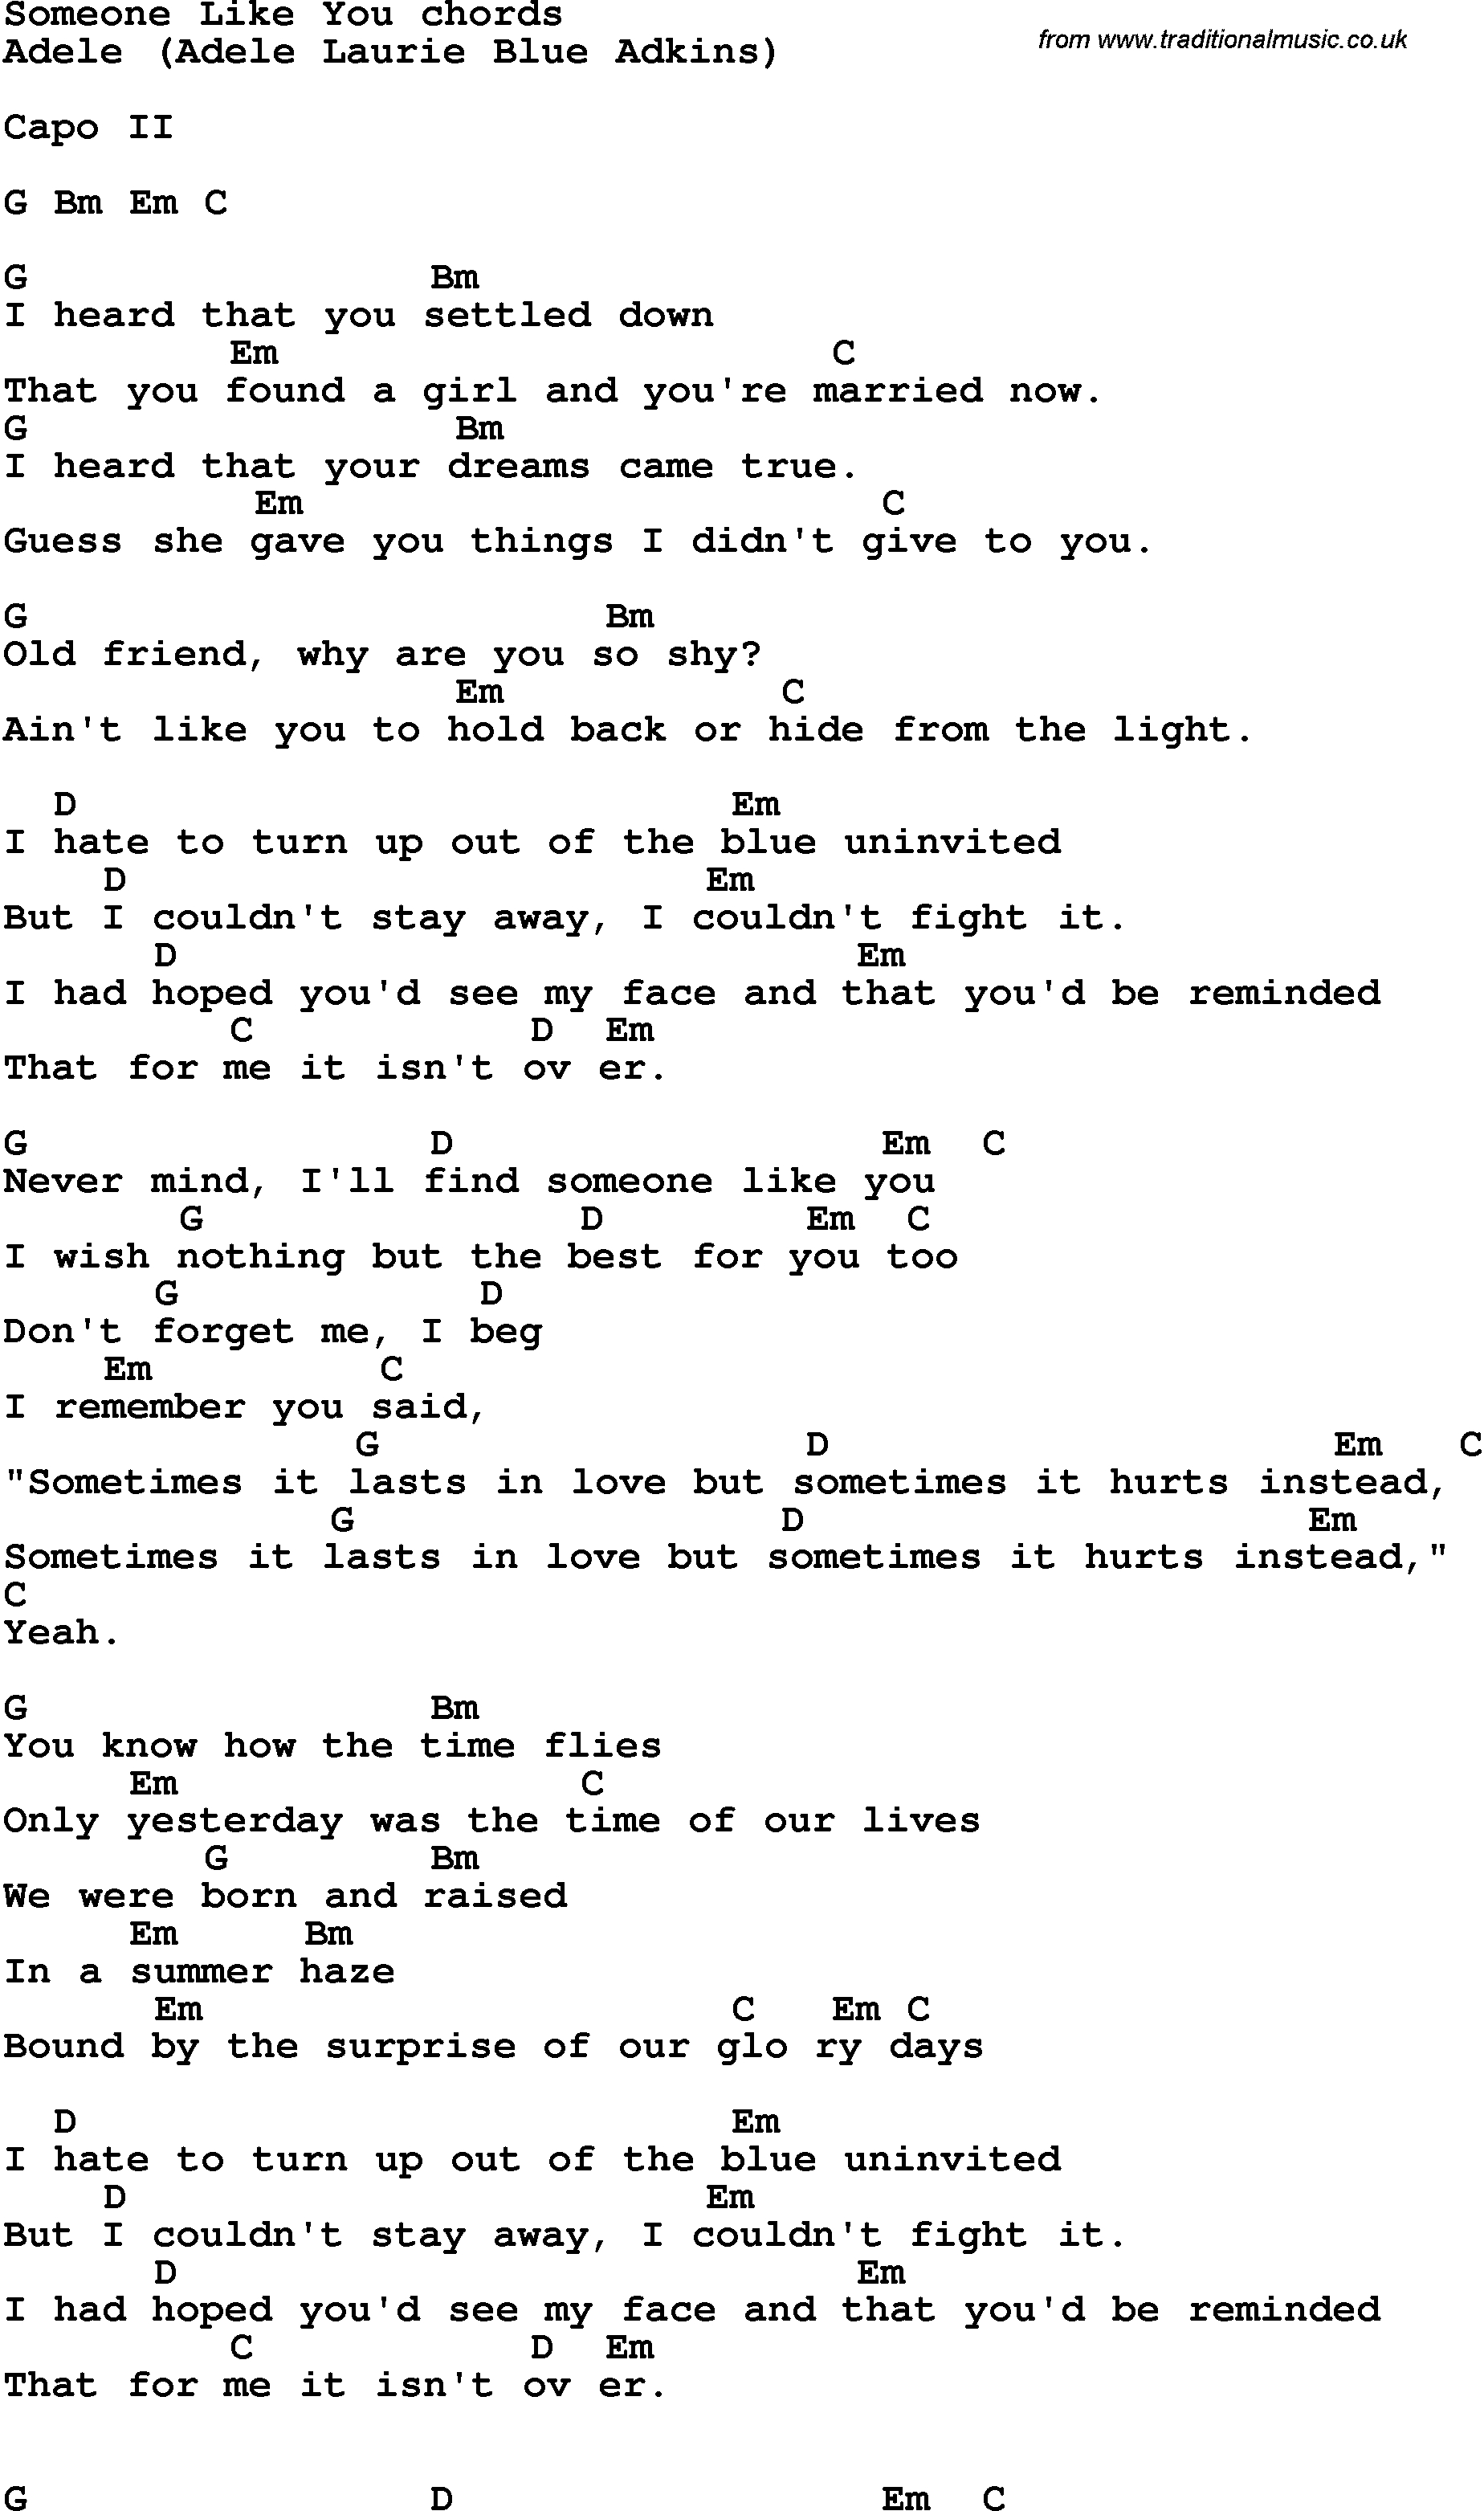 Someone Like You Chords Song Lyrics With Guitar Chords For Someone Like You